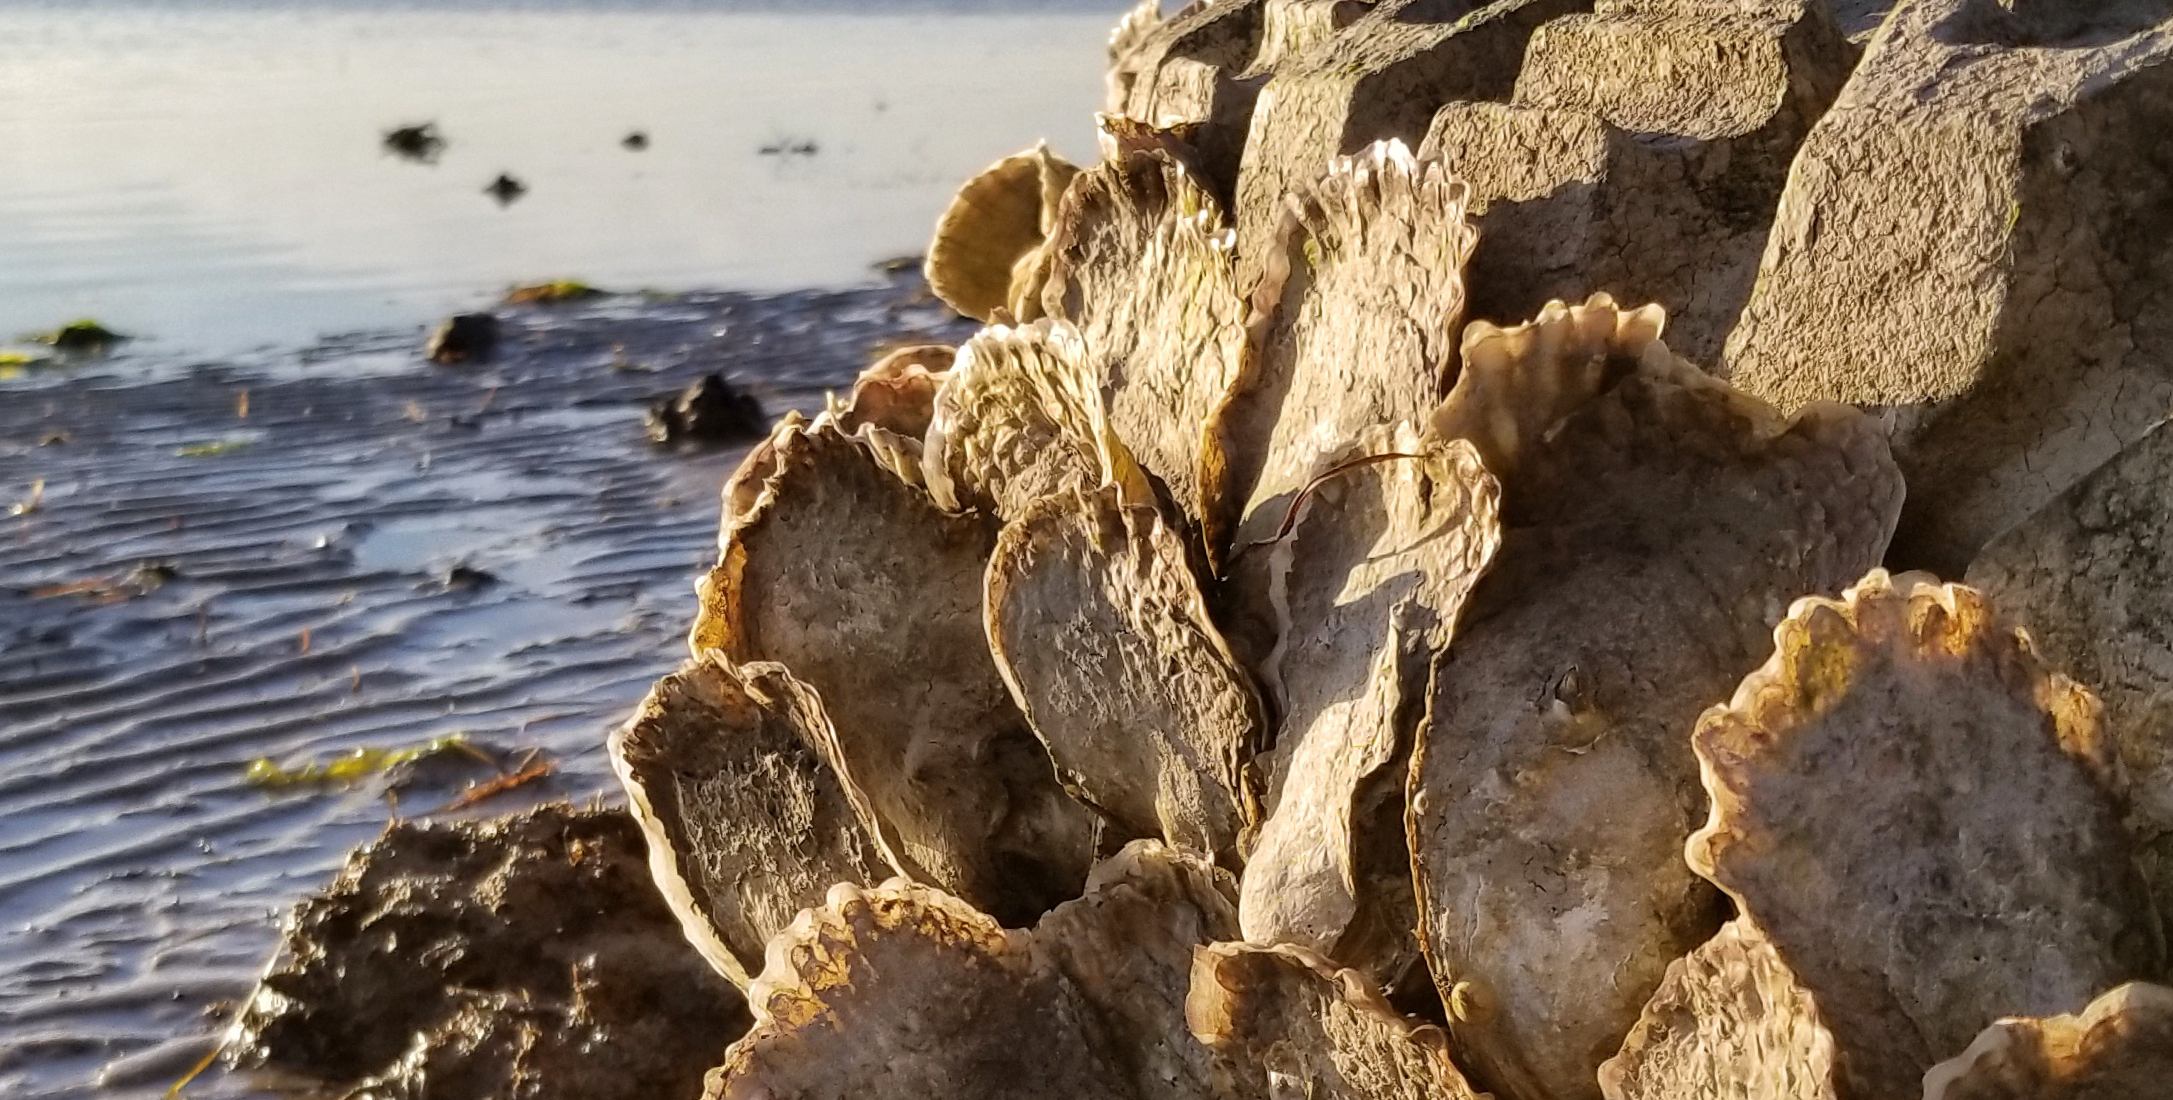 A close up photos of oysters catching the sunlight at low tide.